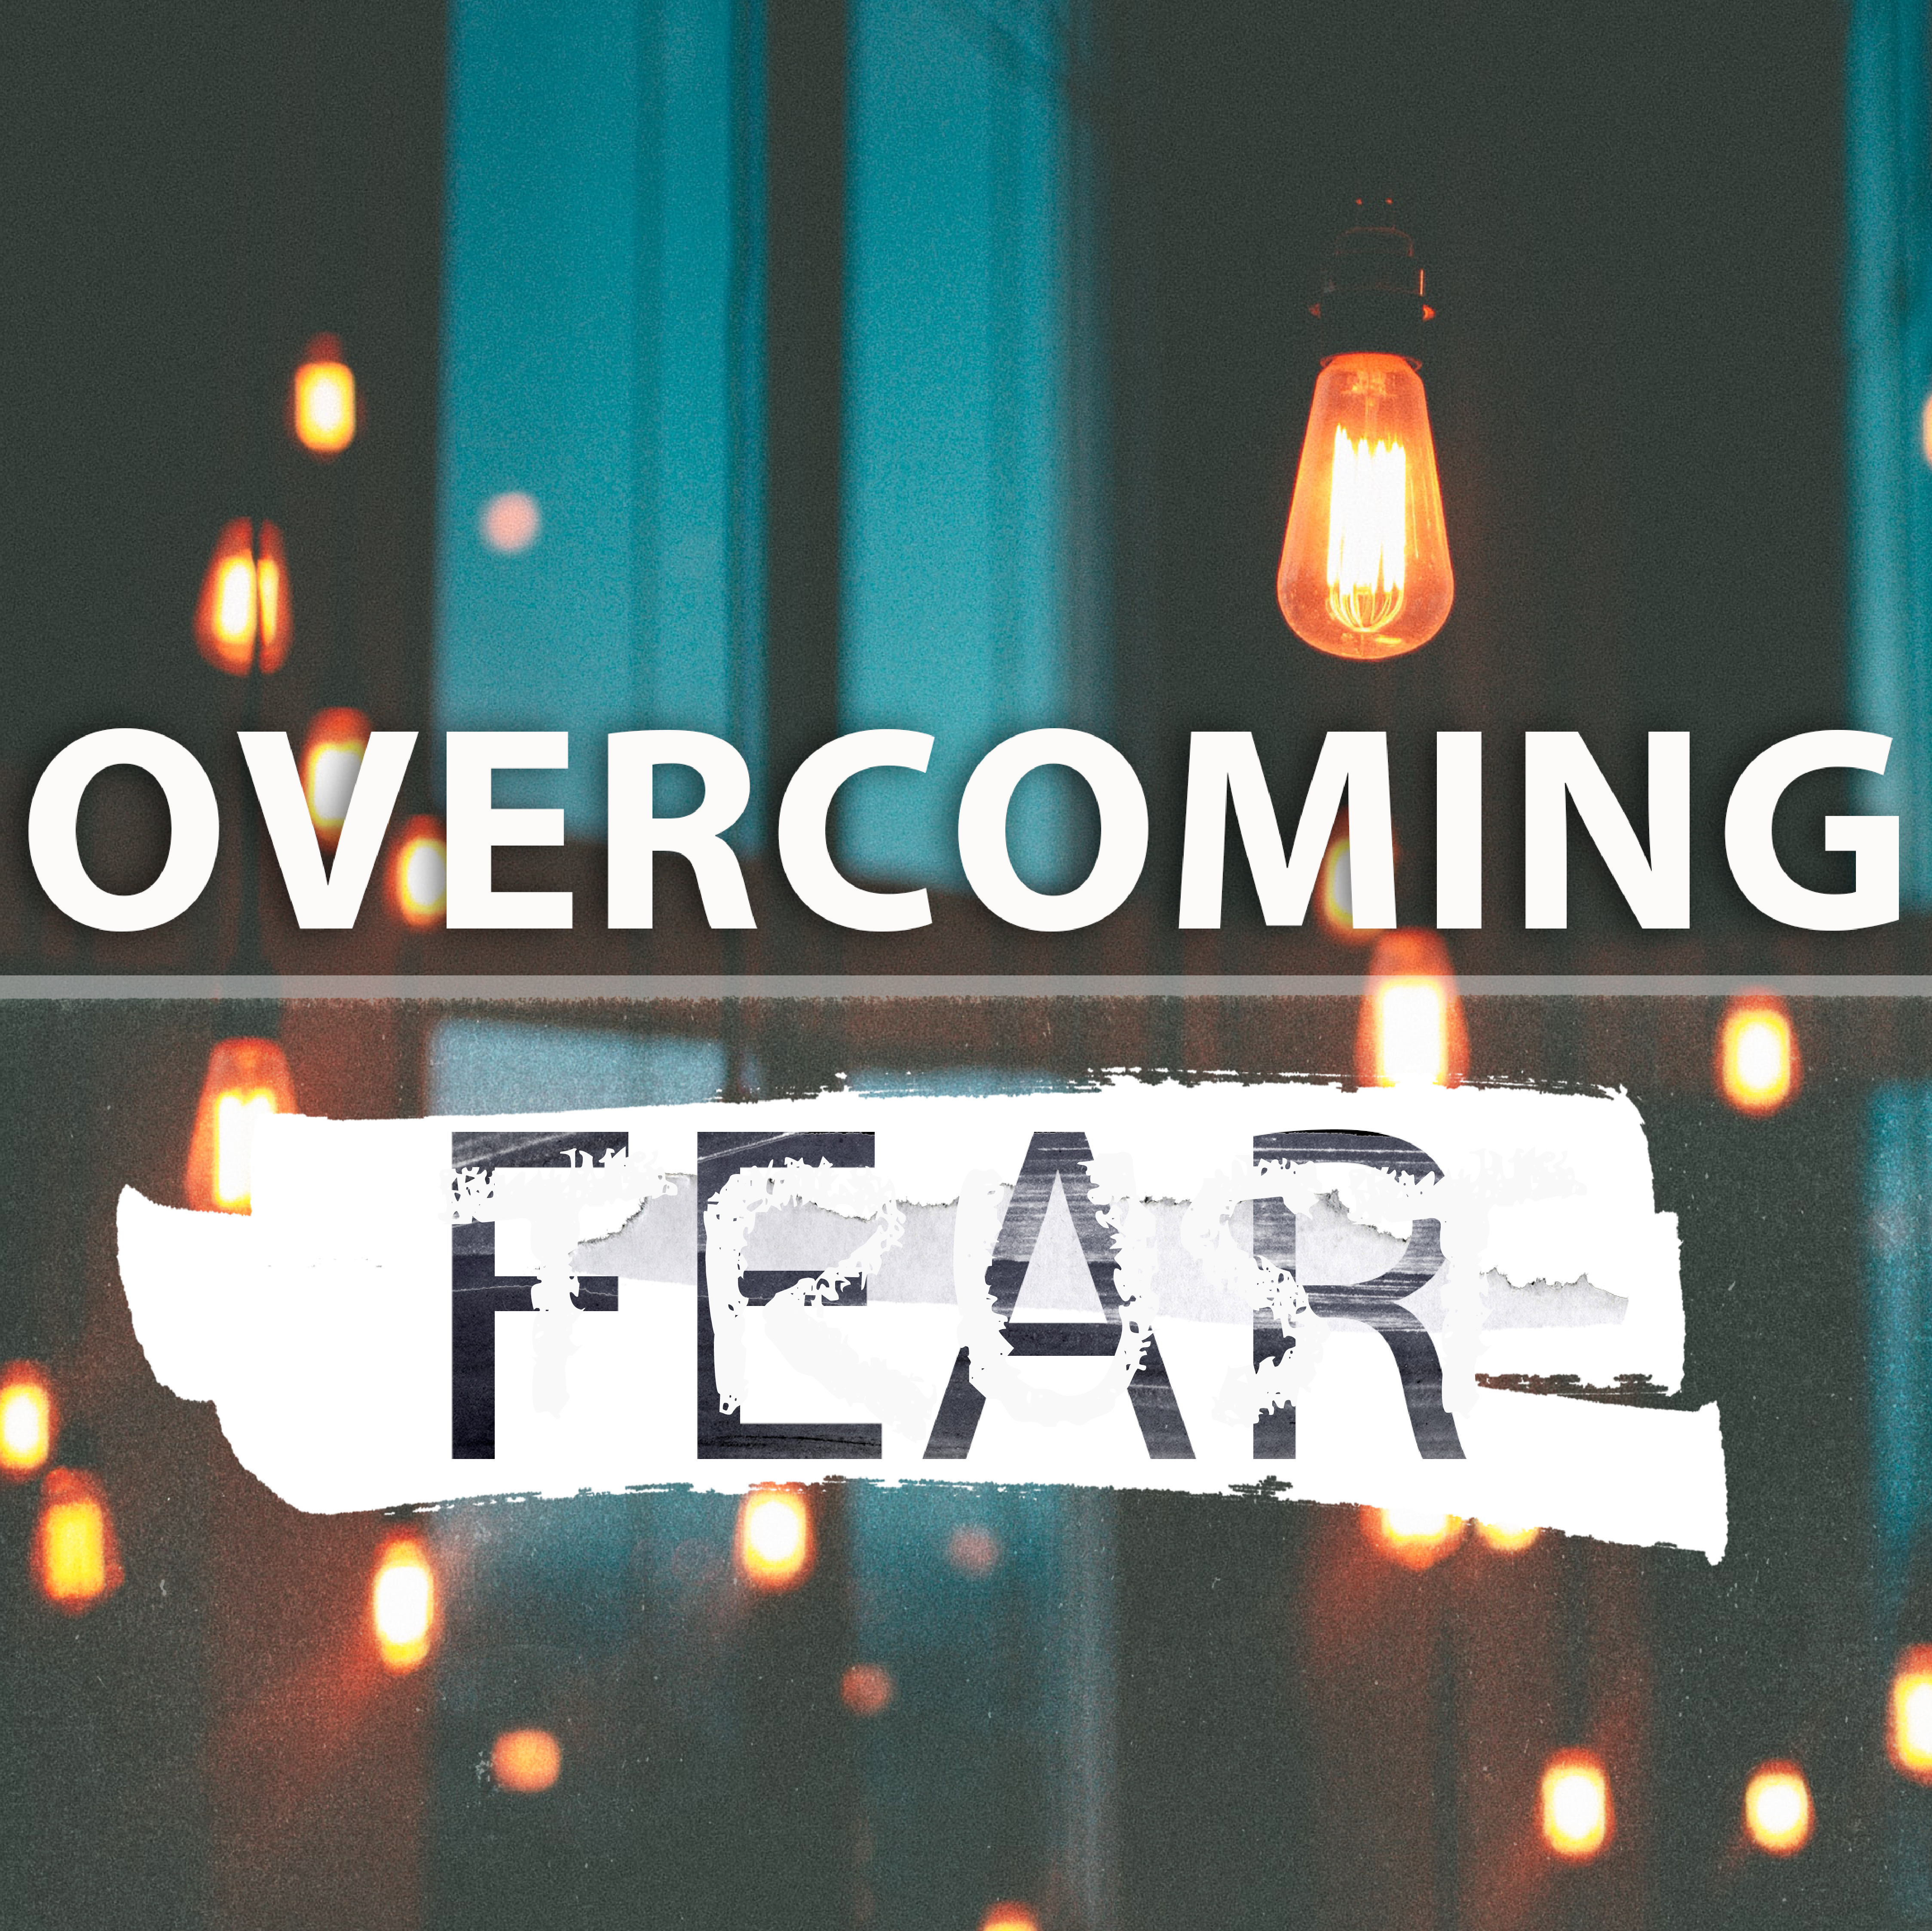 Overcoming Fear pt. 2